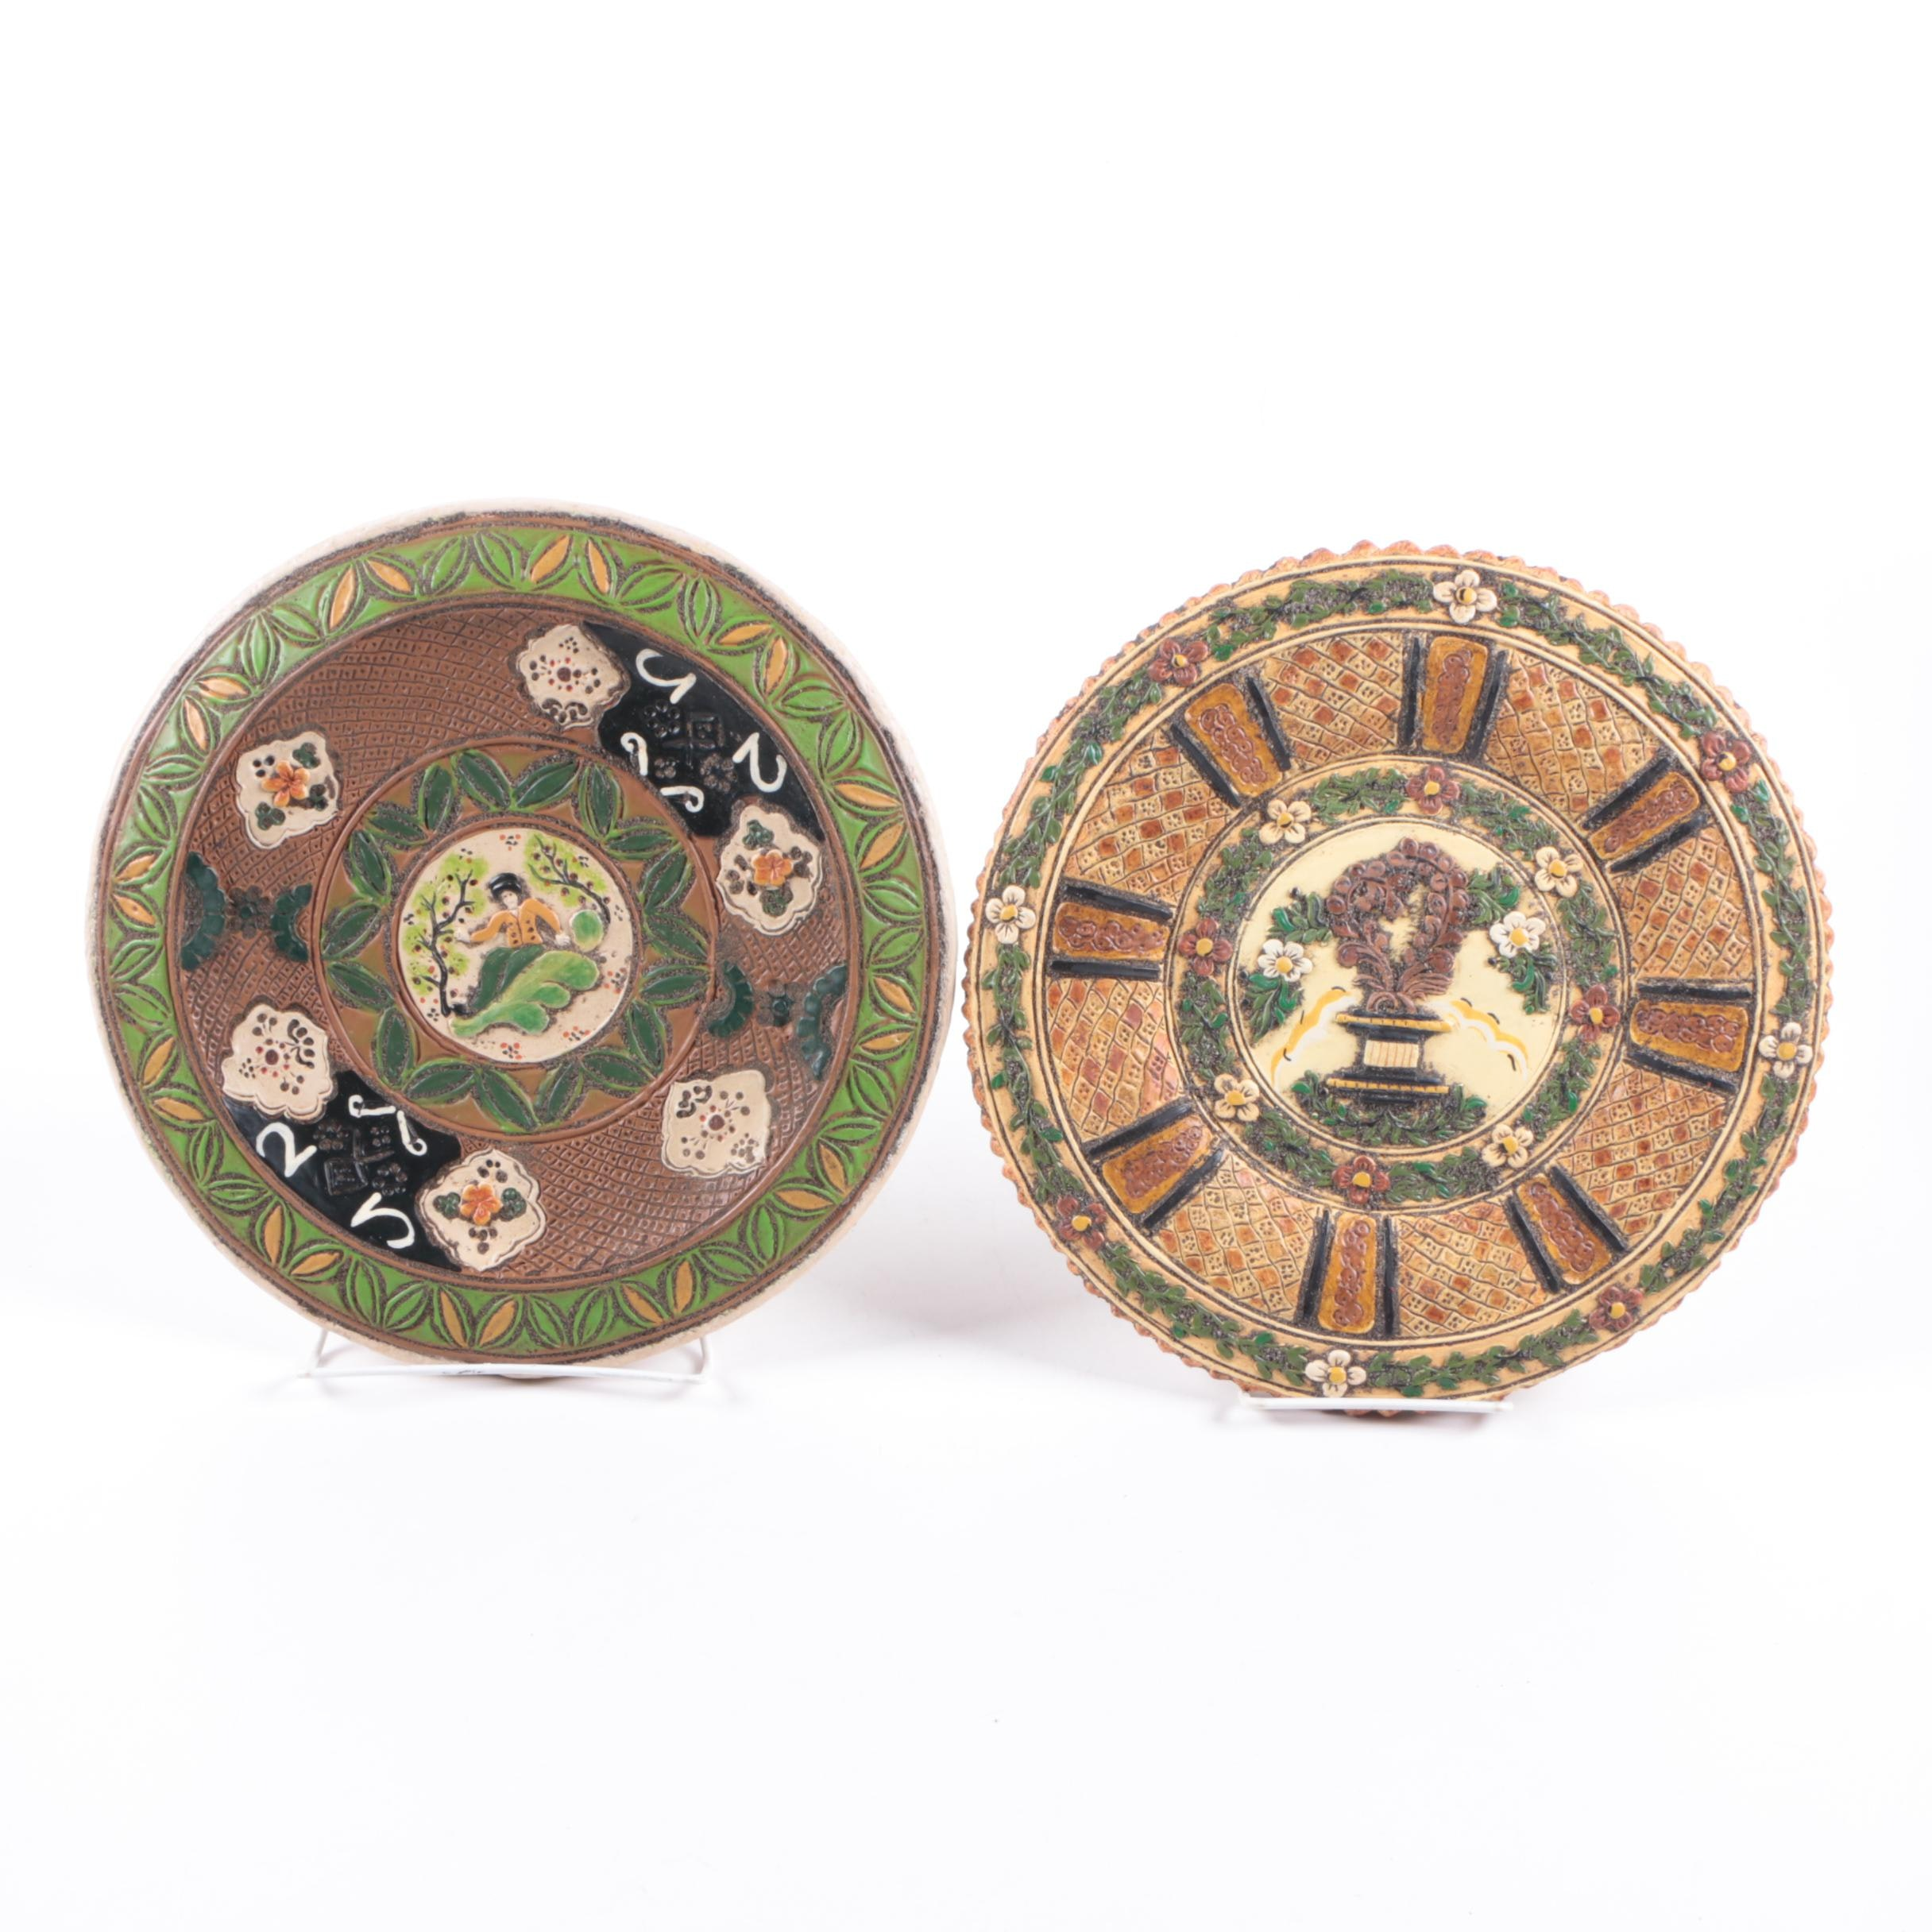 Pair of Decorative Ceramic Plates in Relief Decor